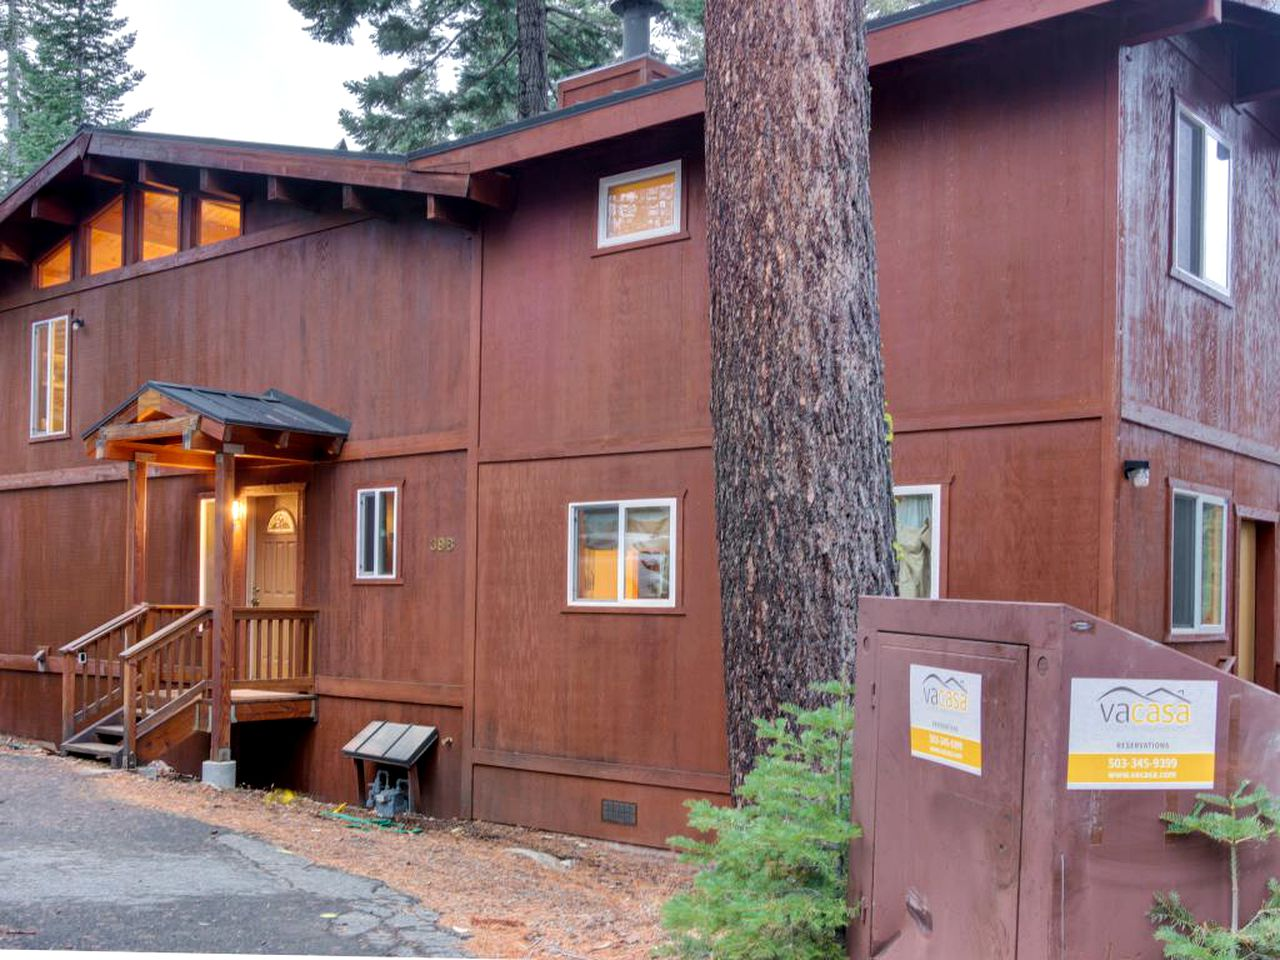 Cabins (Homewood, California, United States)